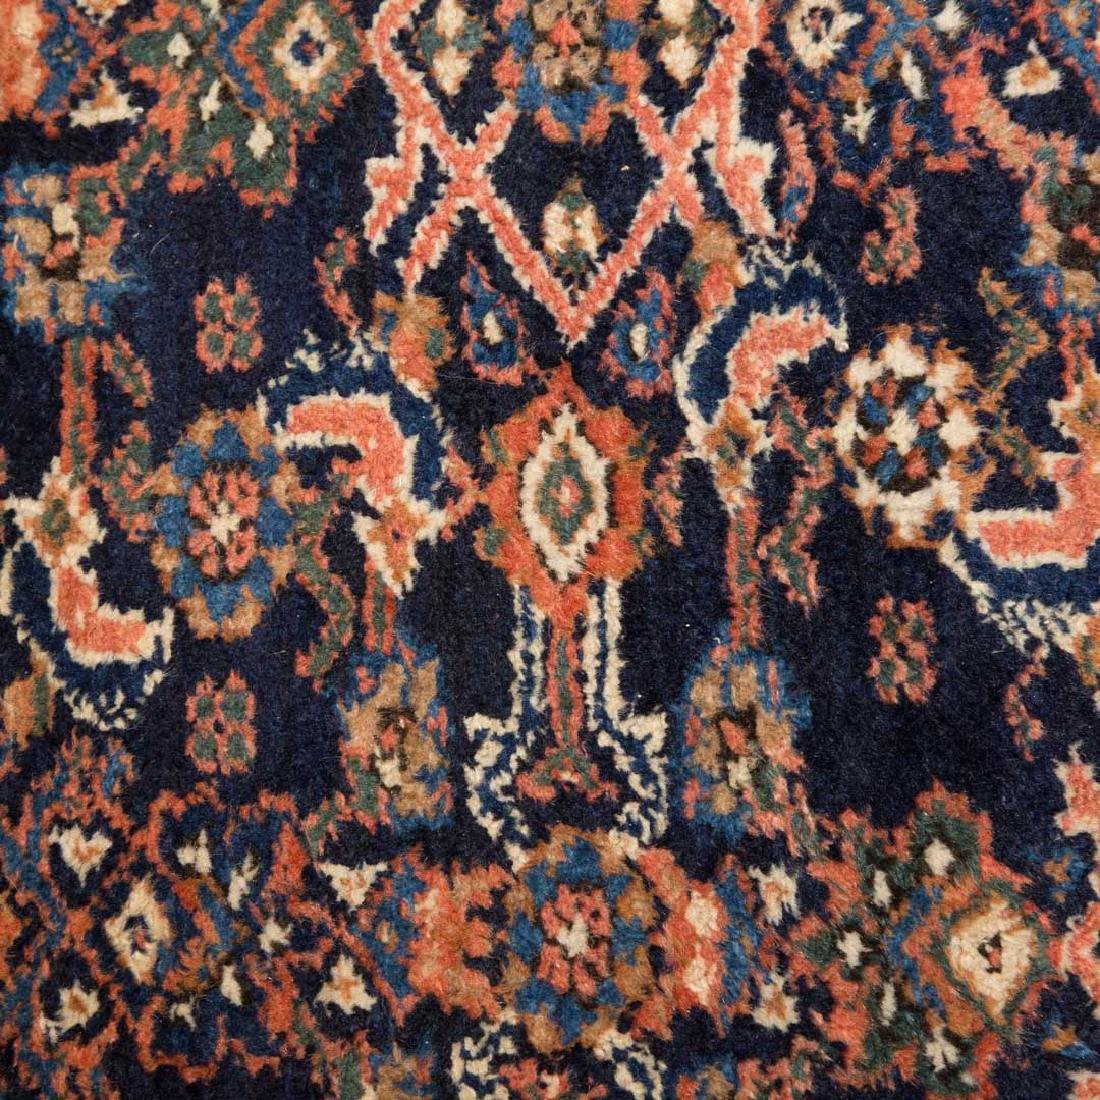 Northwest Persian rug, approx. 3.7 x 7 - 4